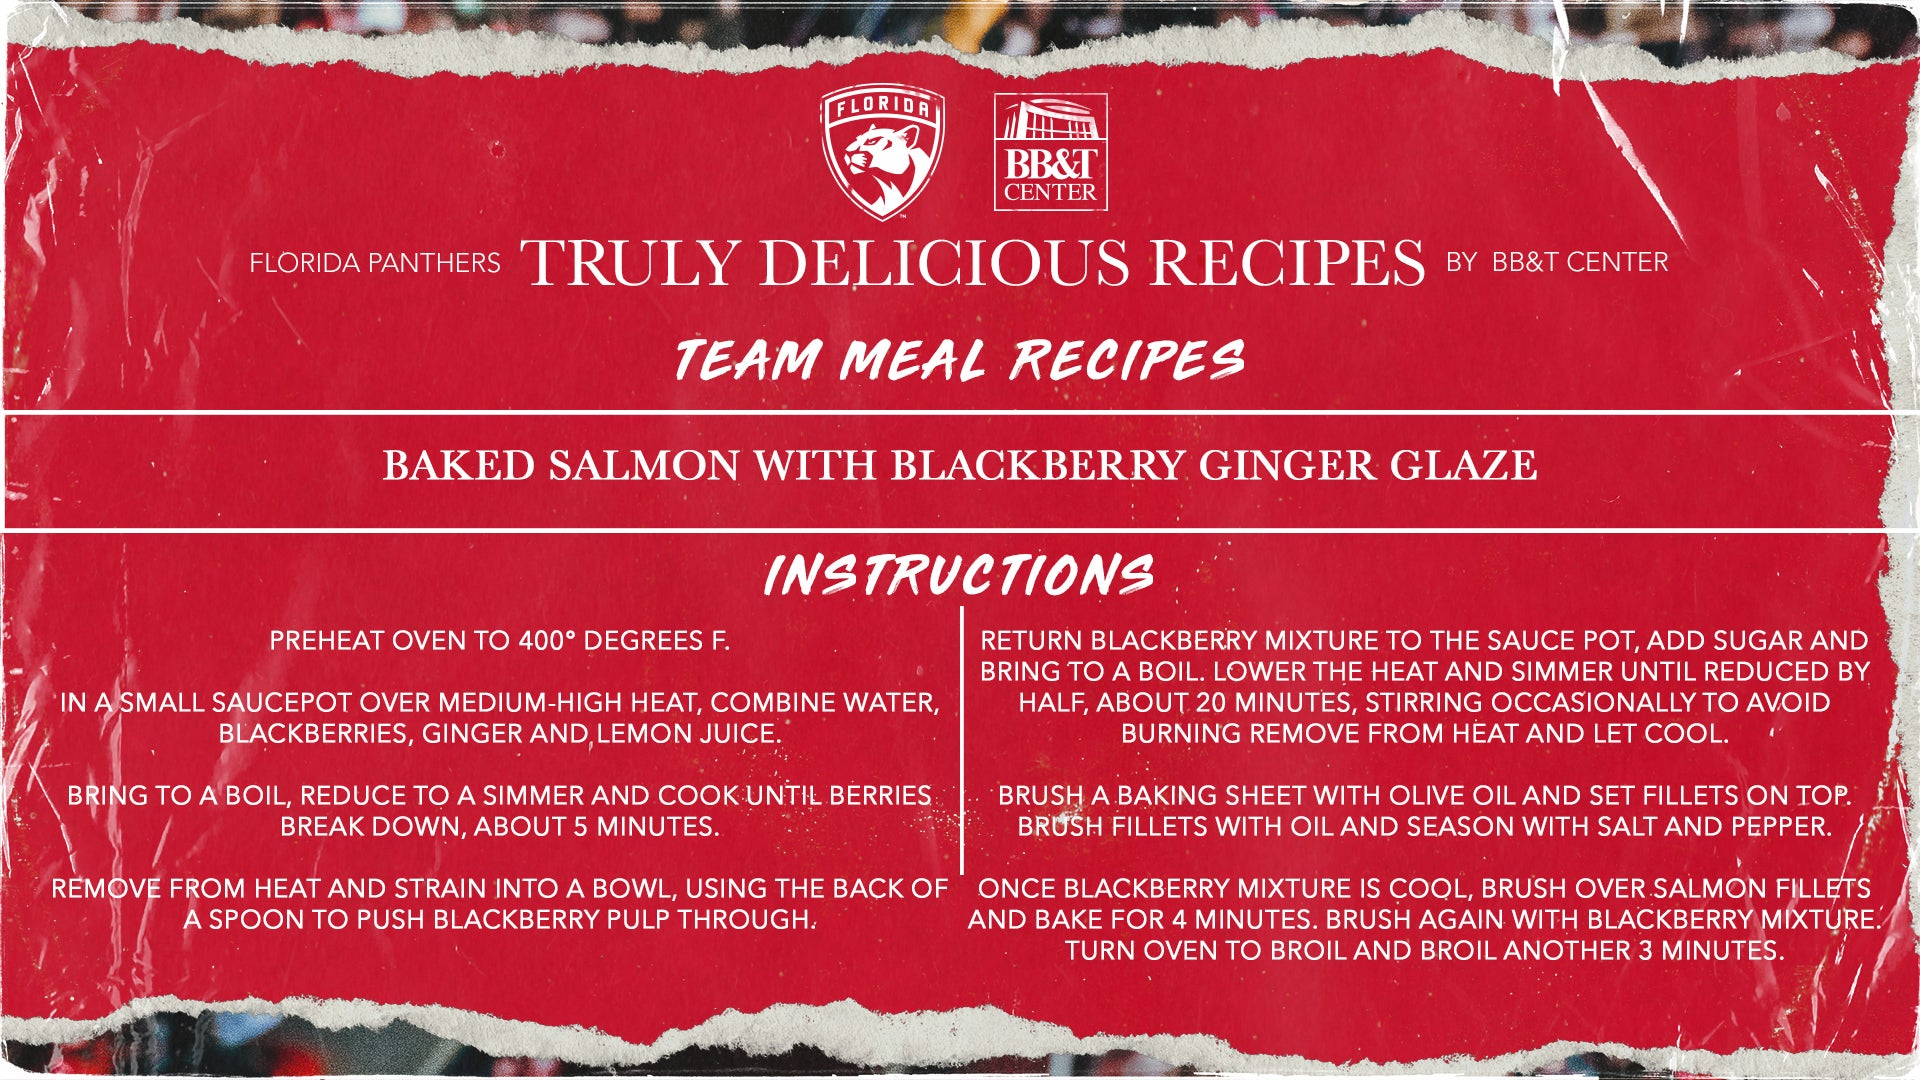 FLA_Recipes_16x9_V2_Instructions.jpg